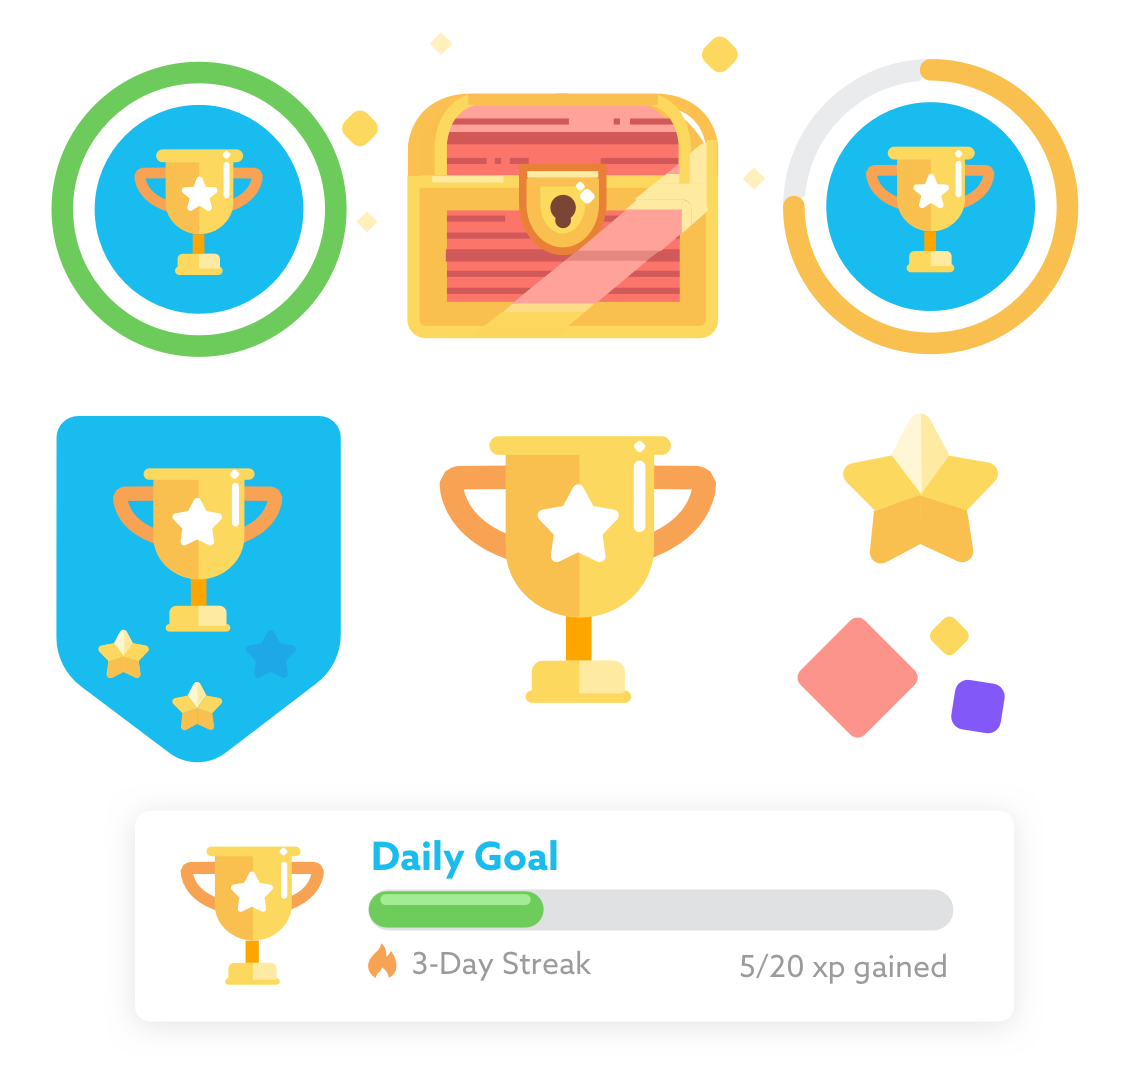 Assets made for Daily Reading Goal